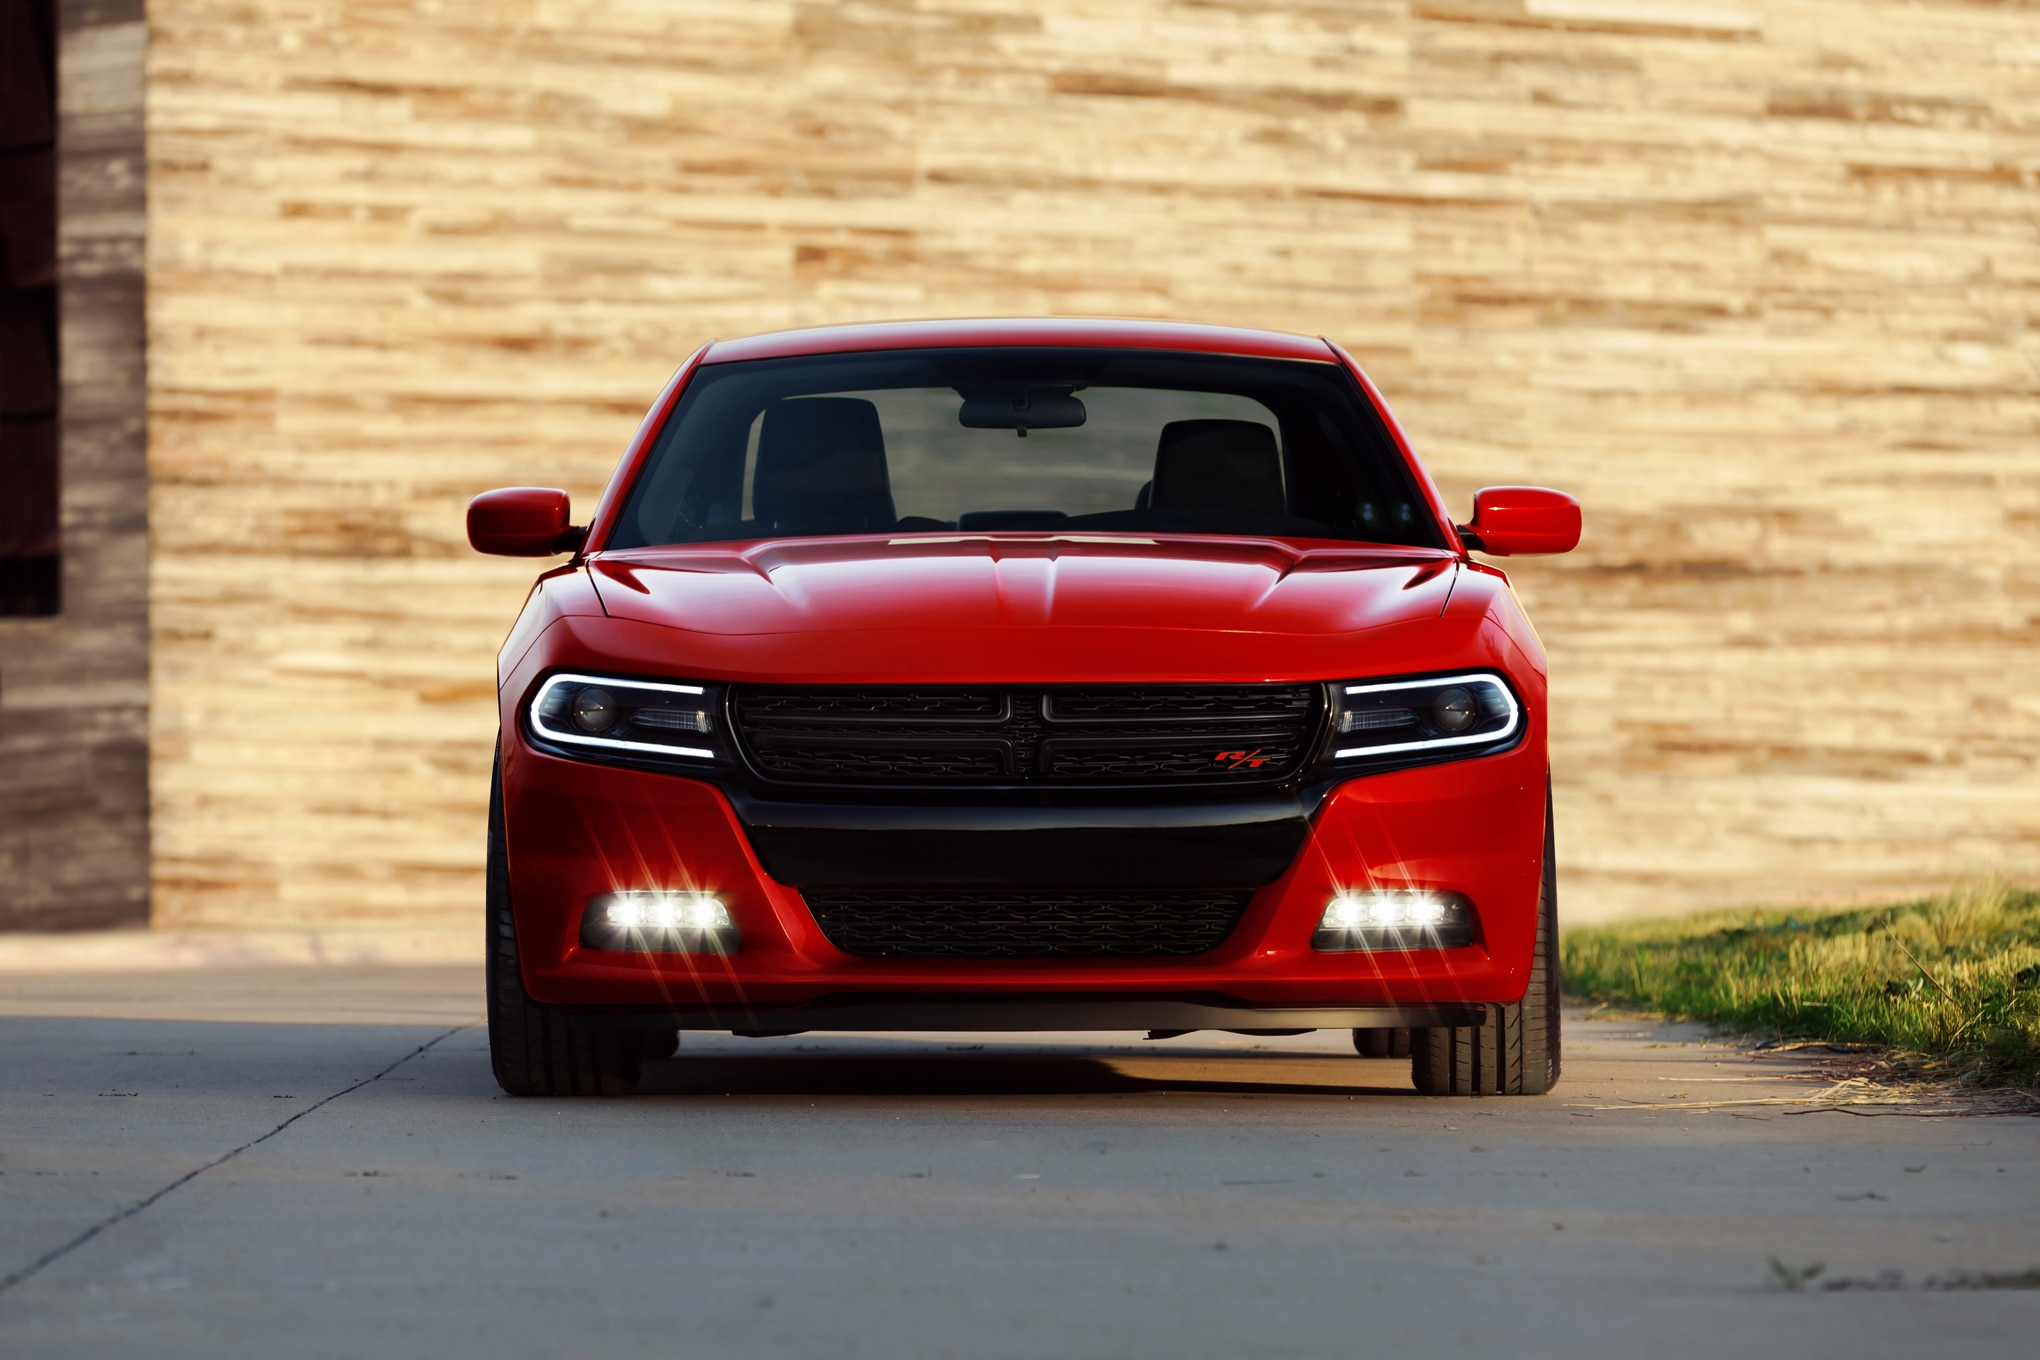 2017 Dodge Charger Msrp >> 2016 Dodge Charger R/T Scat Pack Quick Take Review | Automobile Magazine